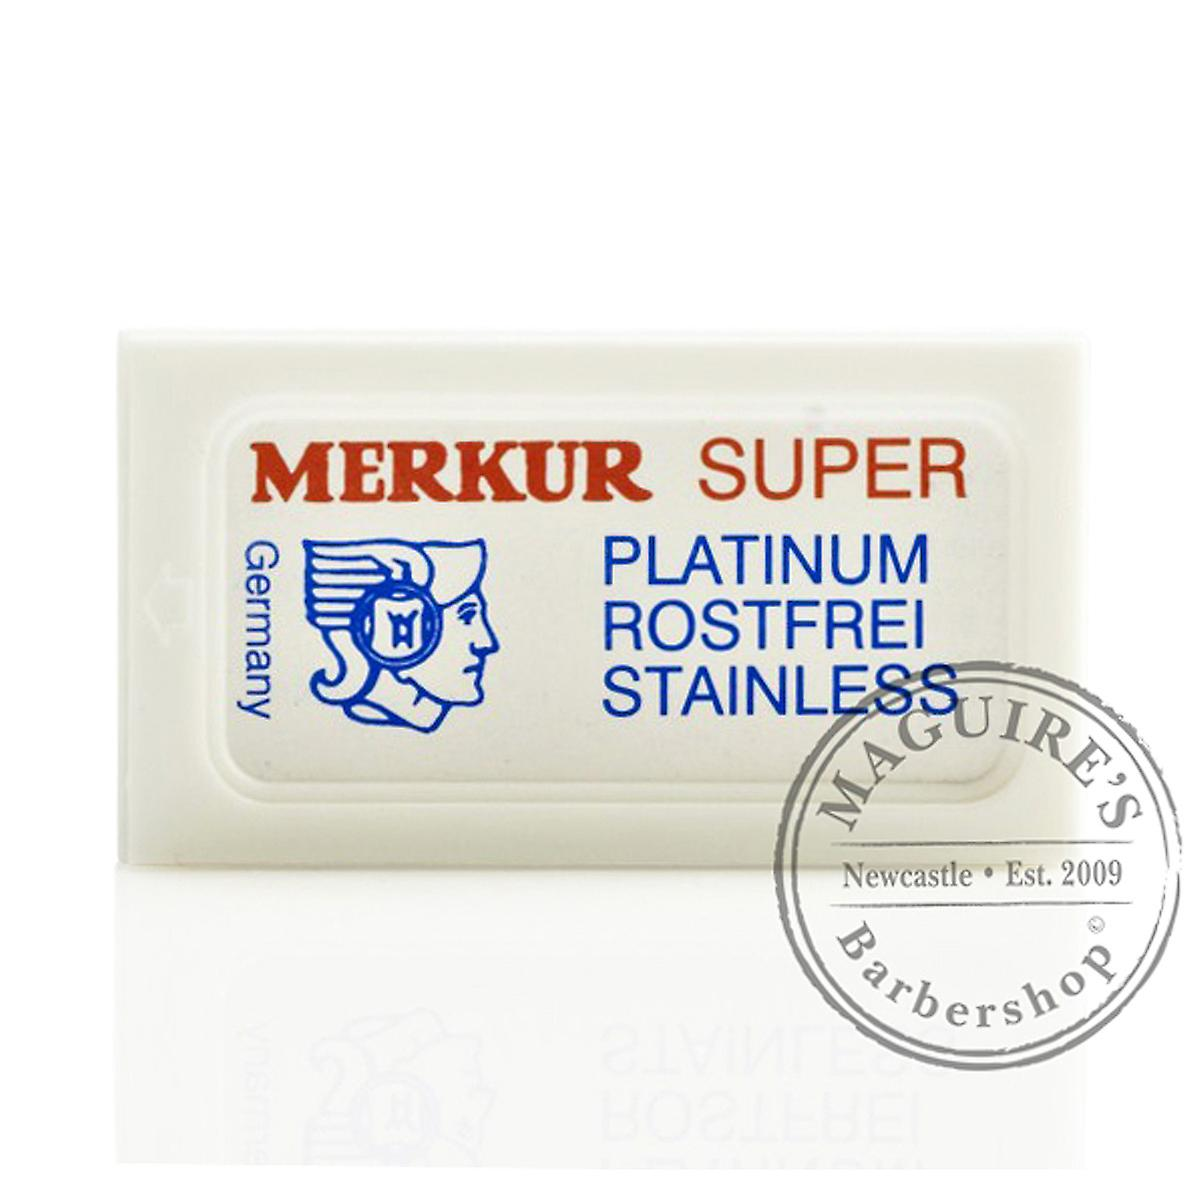 Merkur Super Platinum Stainless Double Edge (DE) Razorblades